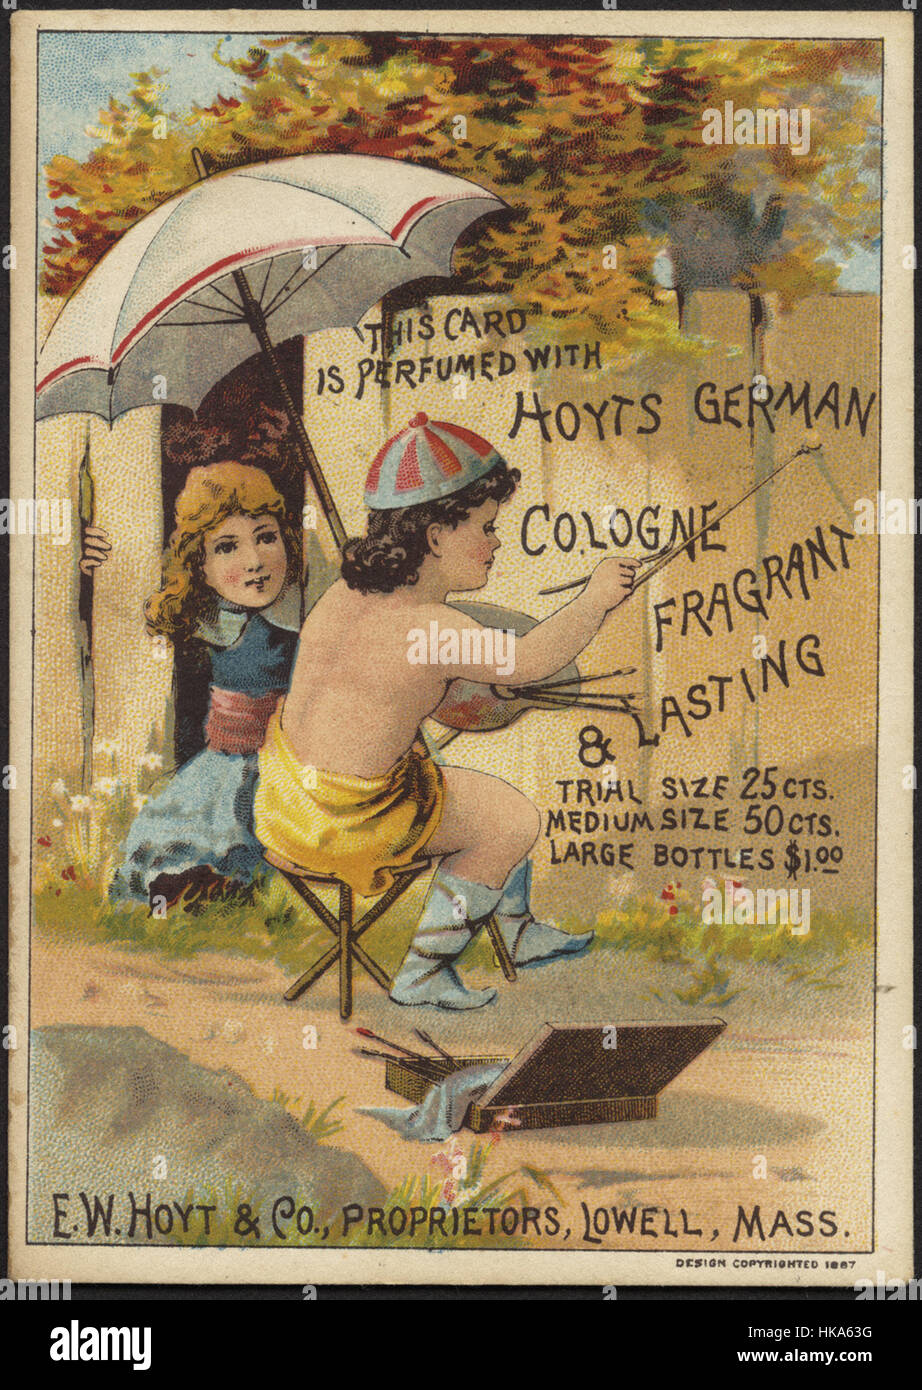 This card is perfumed with Hoyts German Cologne, fragrant & lasting - Stock Image